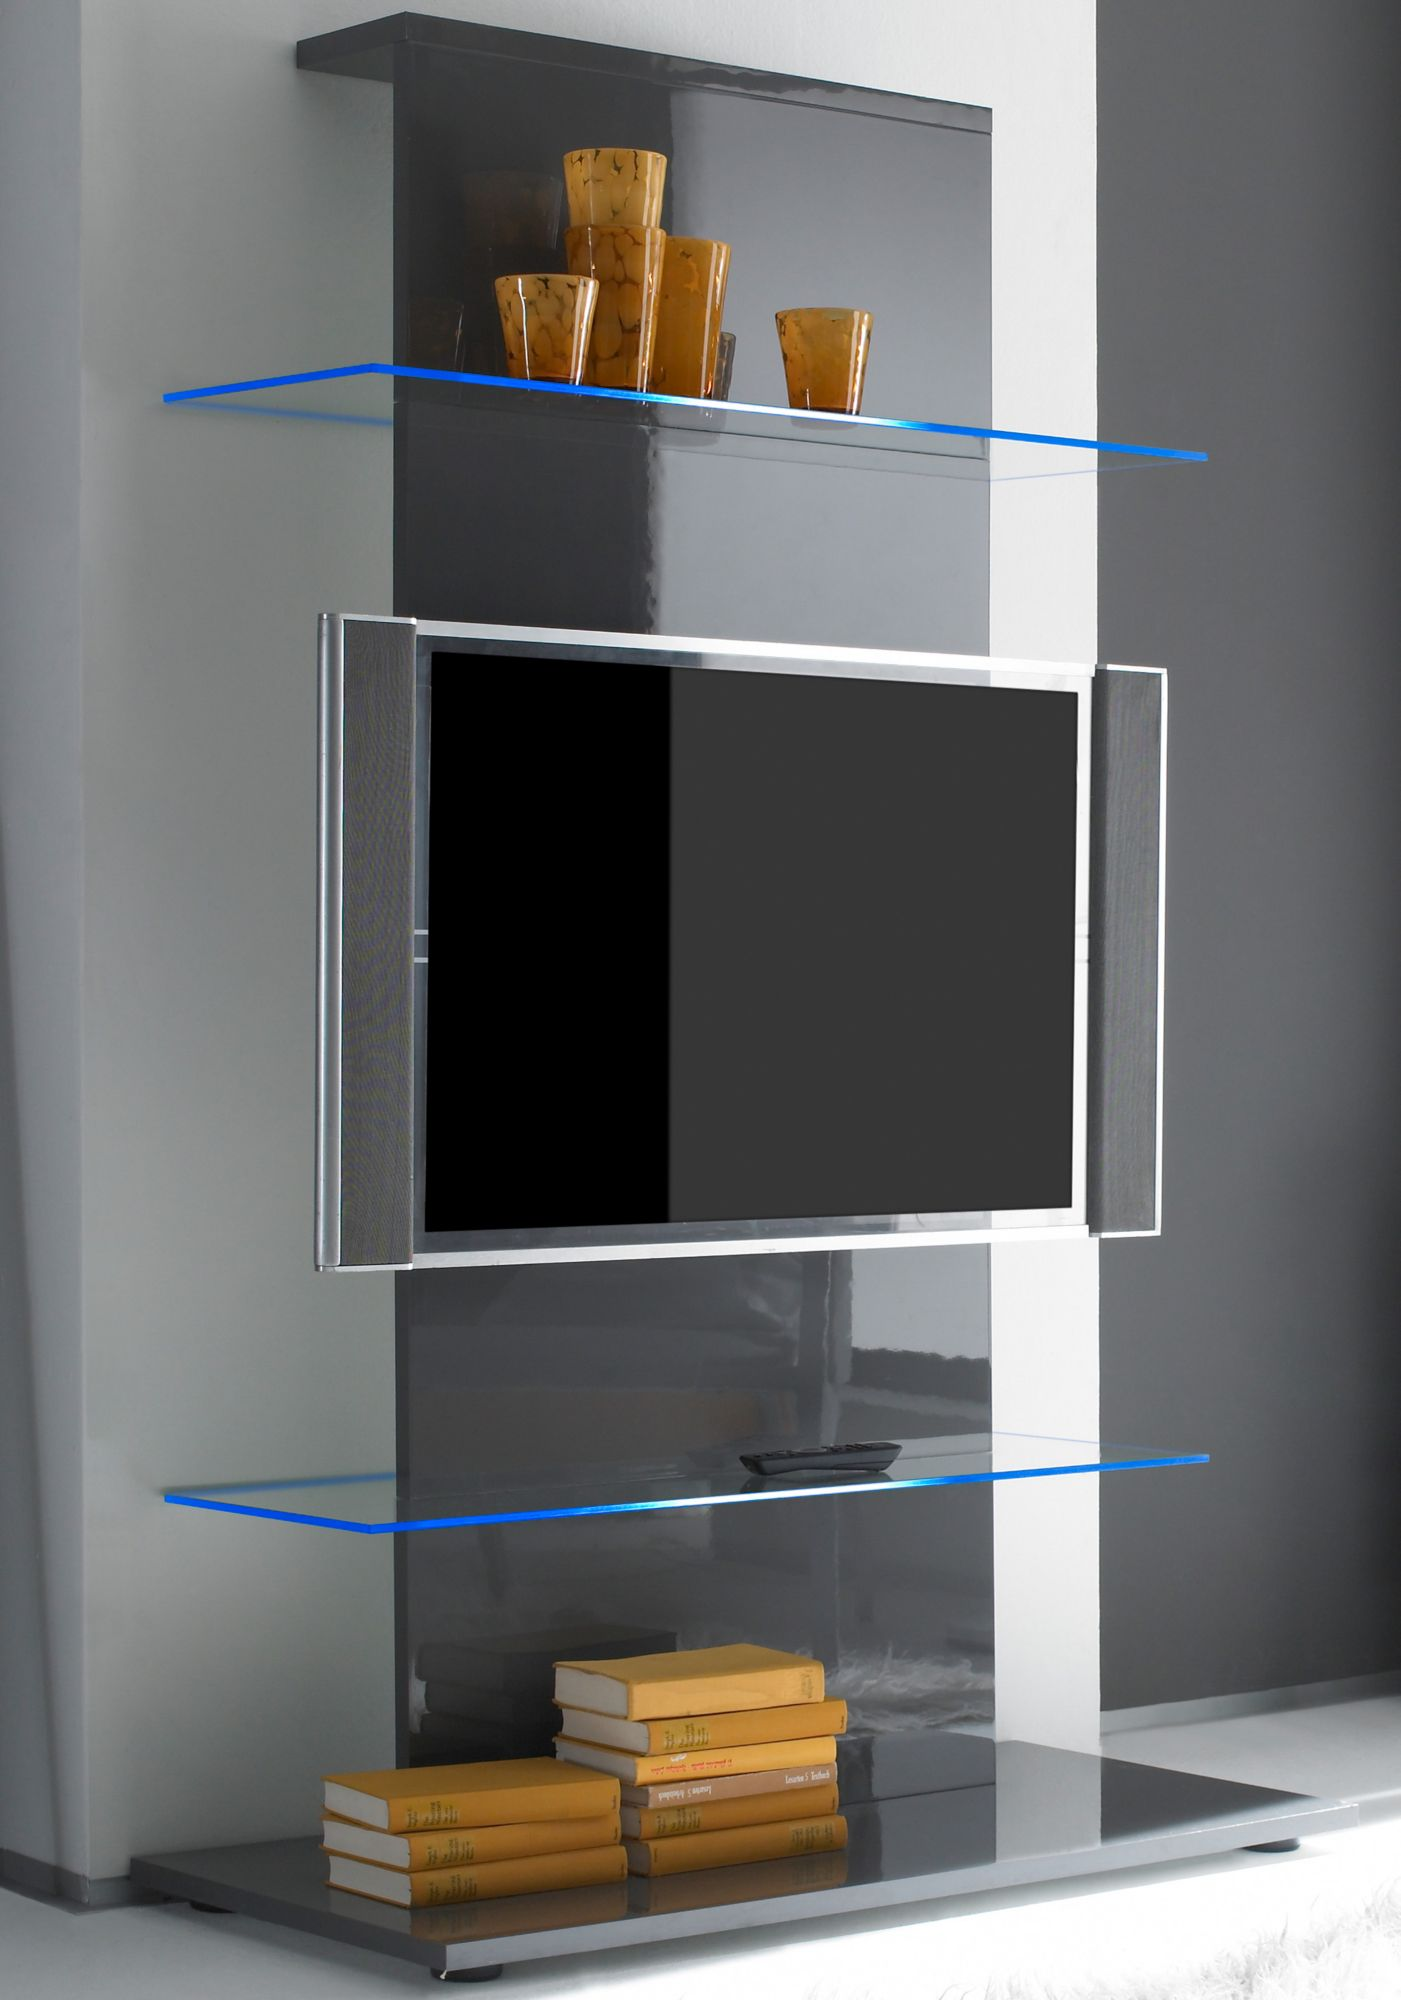 lc tv turm h he 169 cm schwab versand tv m bel. Black Bedroom Furniture Sets. Home Design Ideas